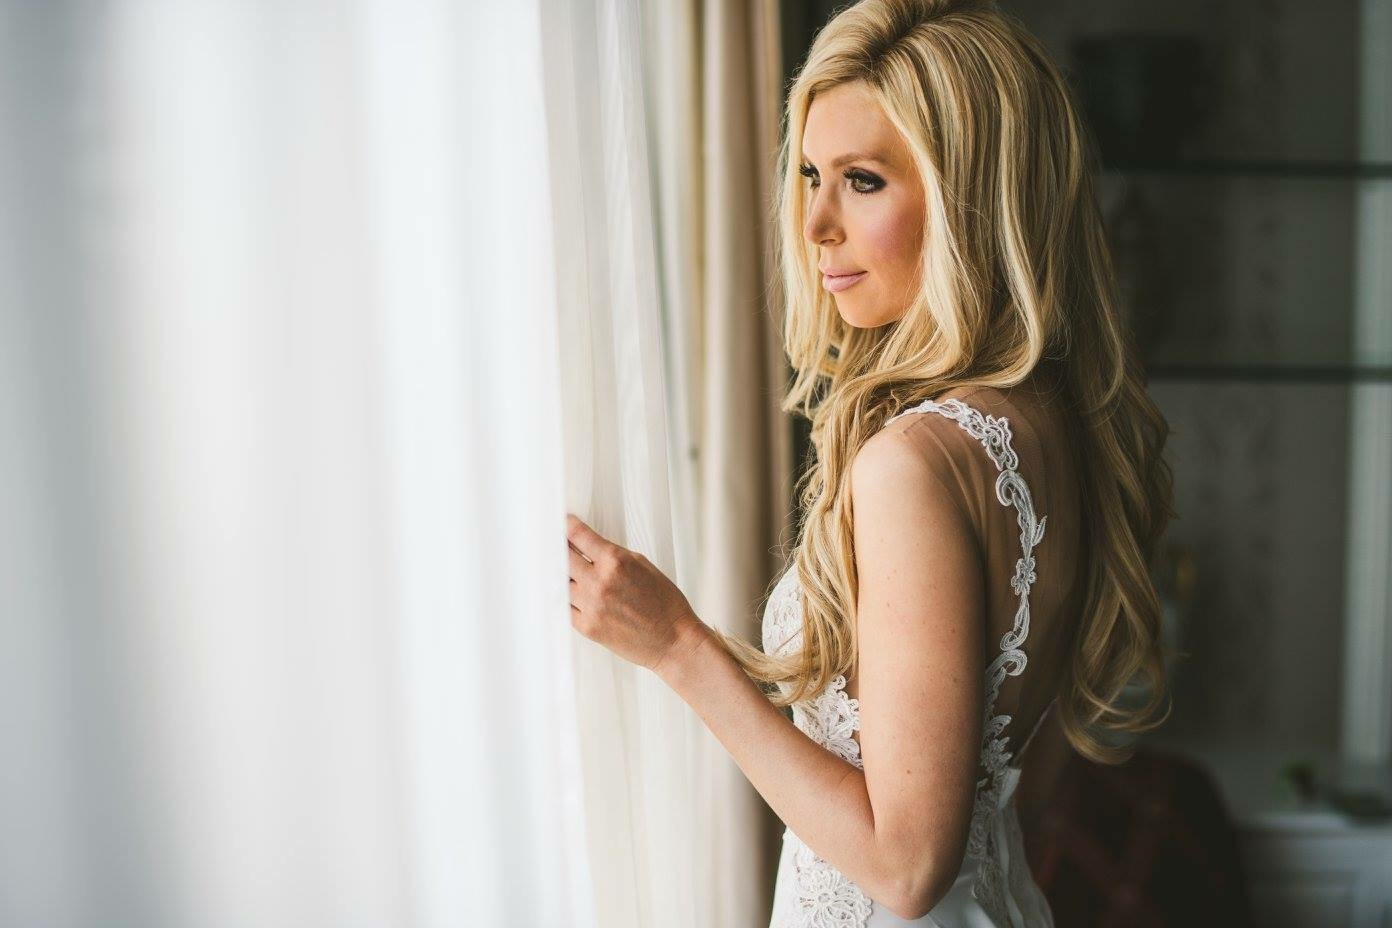 bride looking out window with long blonde hair worn down for wedding day hairstyle